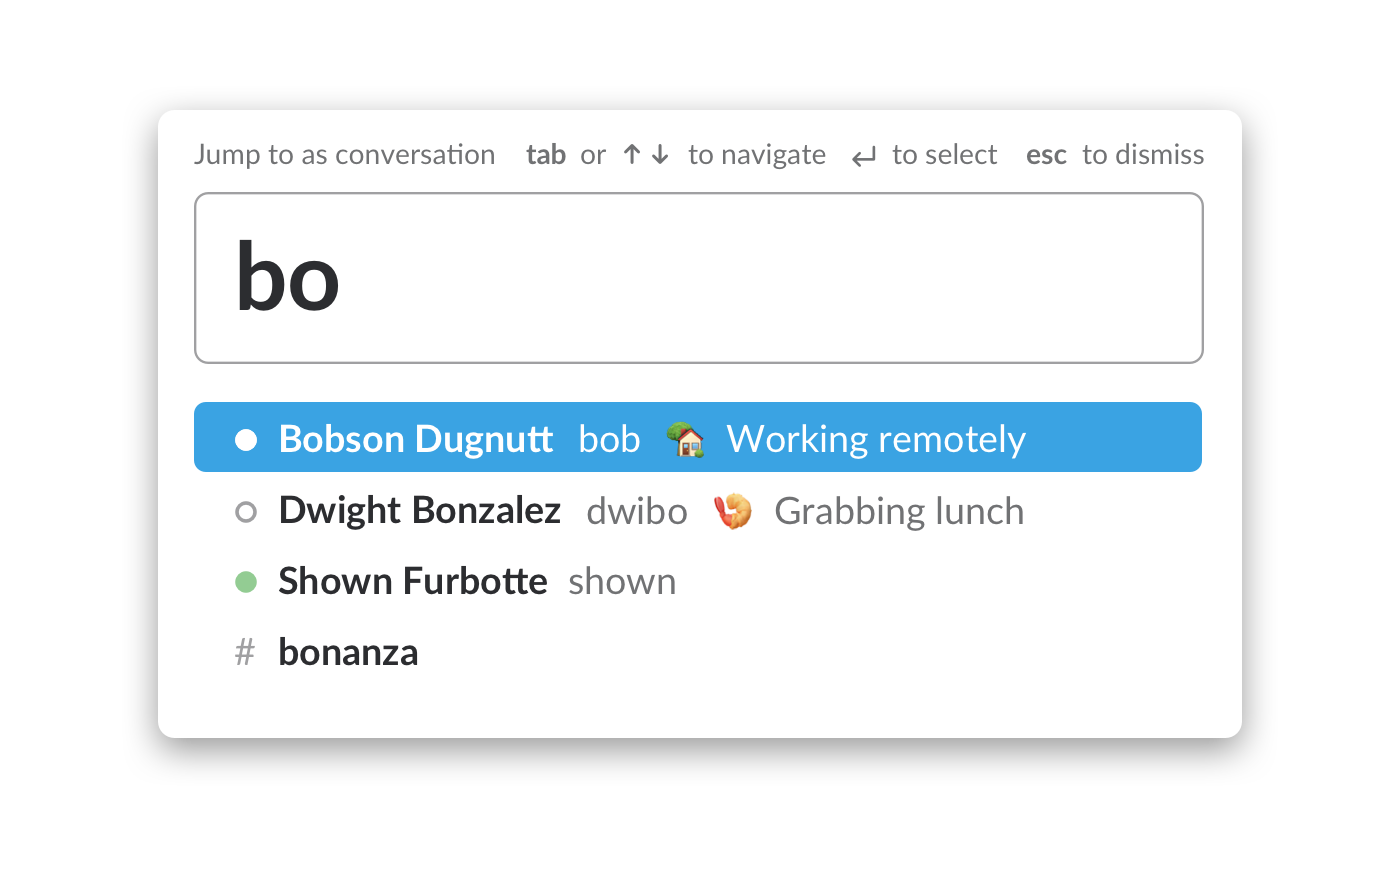 When you search for a user in Slack, you will see their status